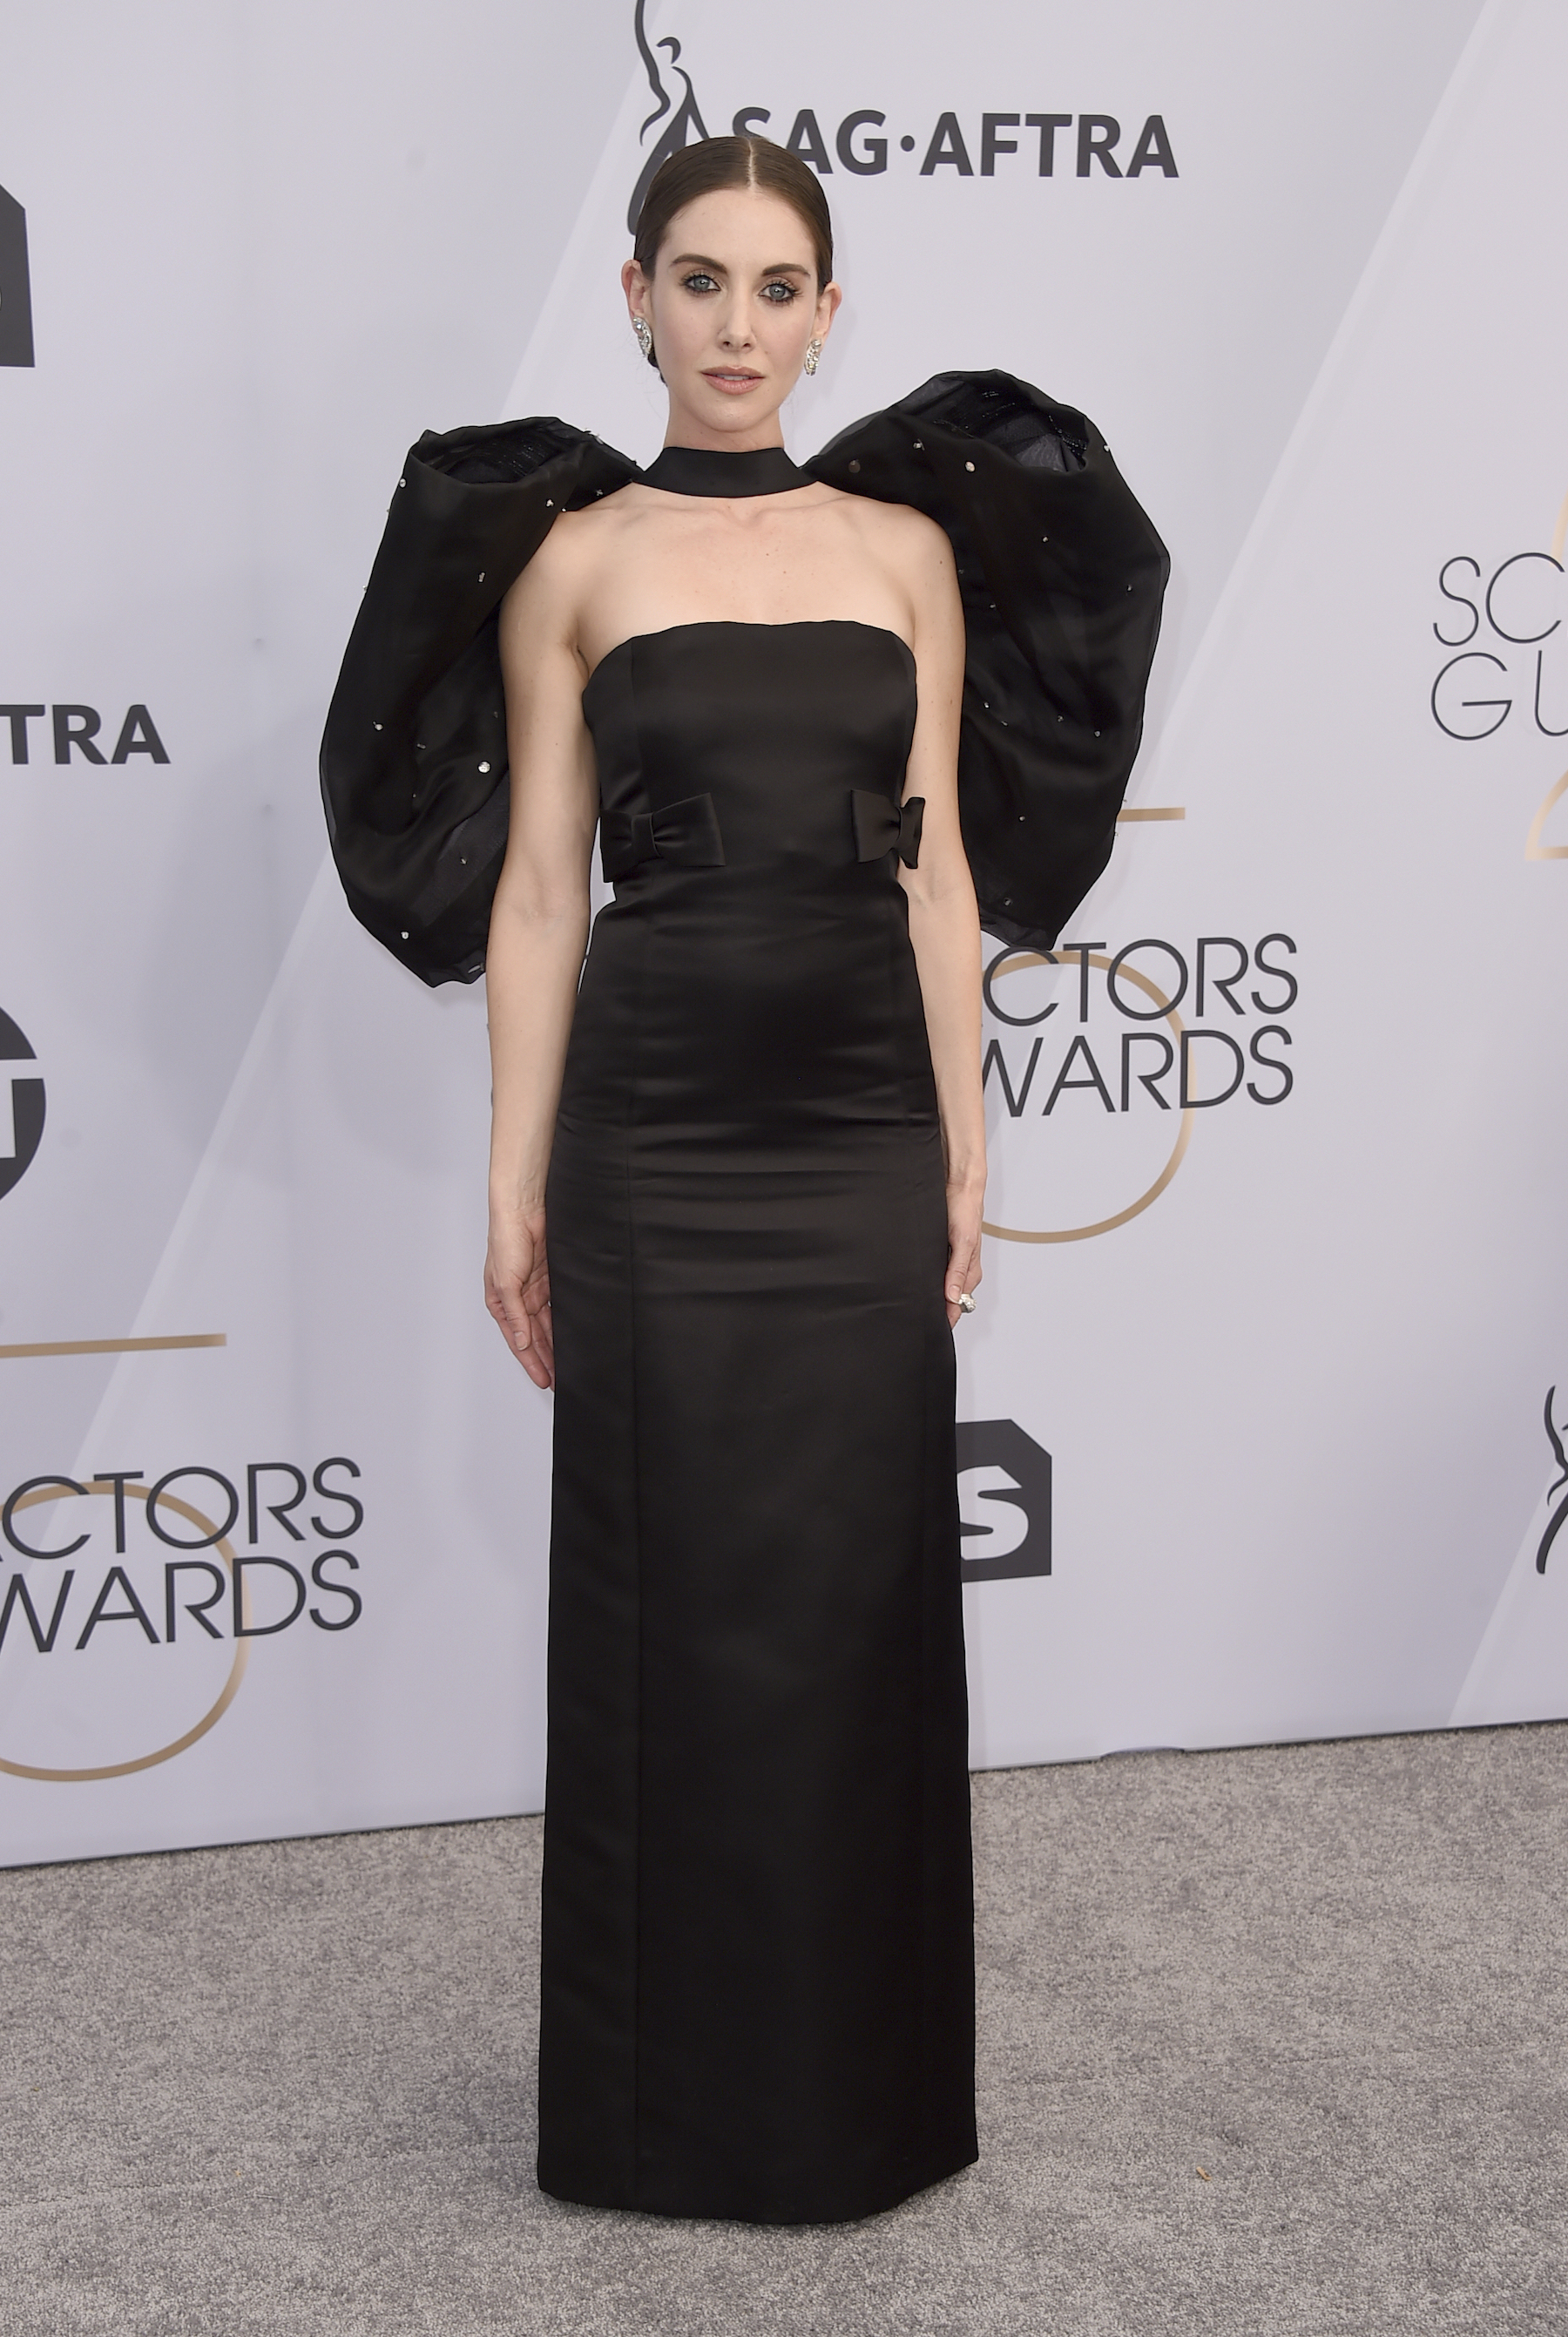 "<div class=""meta image-caption""><div class=""origin-logo origin-image ap""><span>AP</span></div><span class=""caption-text"">Alison Brie arrives at the 25th annual Screen Actors Guild Awards at the Shrine Auditorium & Expo Hall on Sunday, Jan. 27, 2019, in Los Angeles. (Jordan Strauss/Invision/AP)</span></div>"